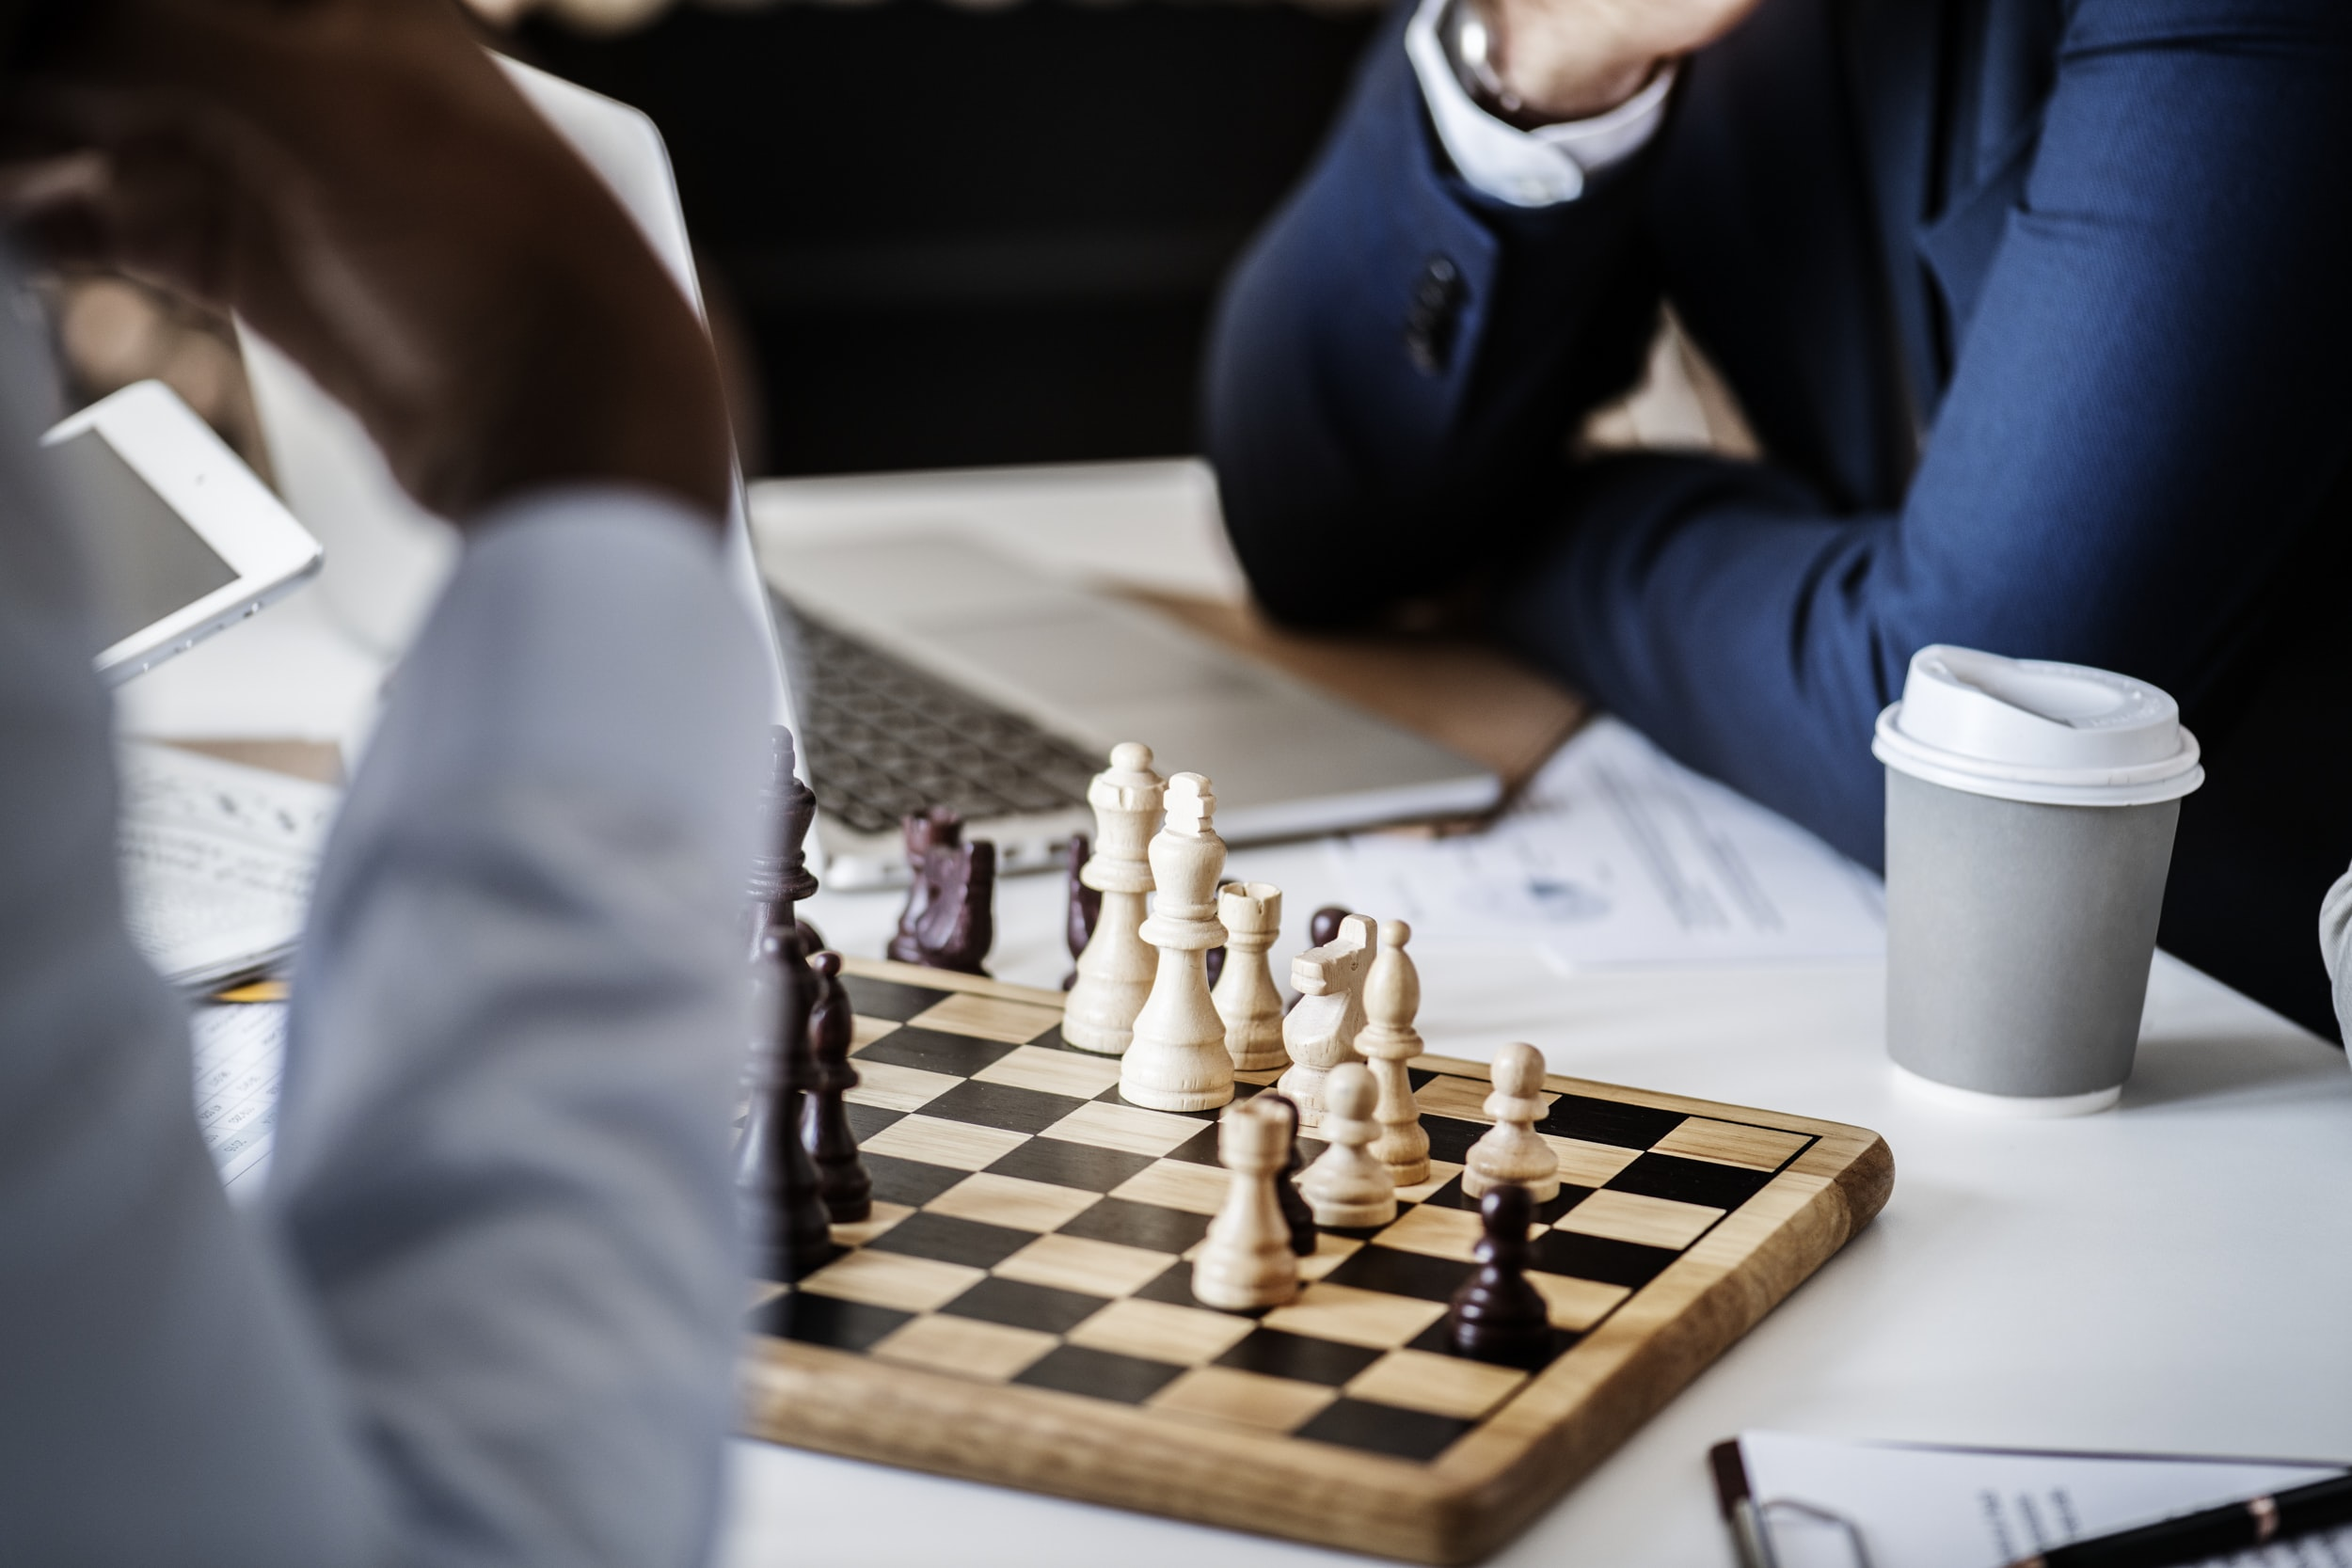 photo of two person playing chess board